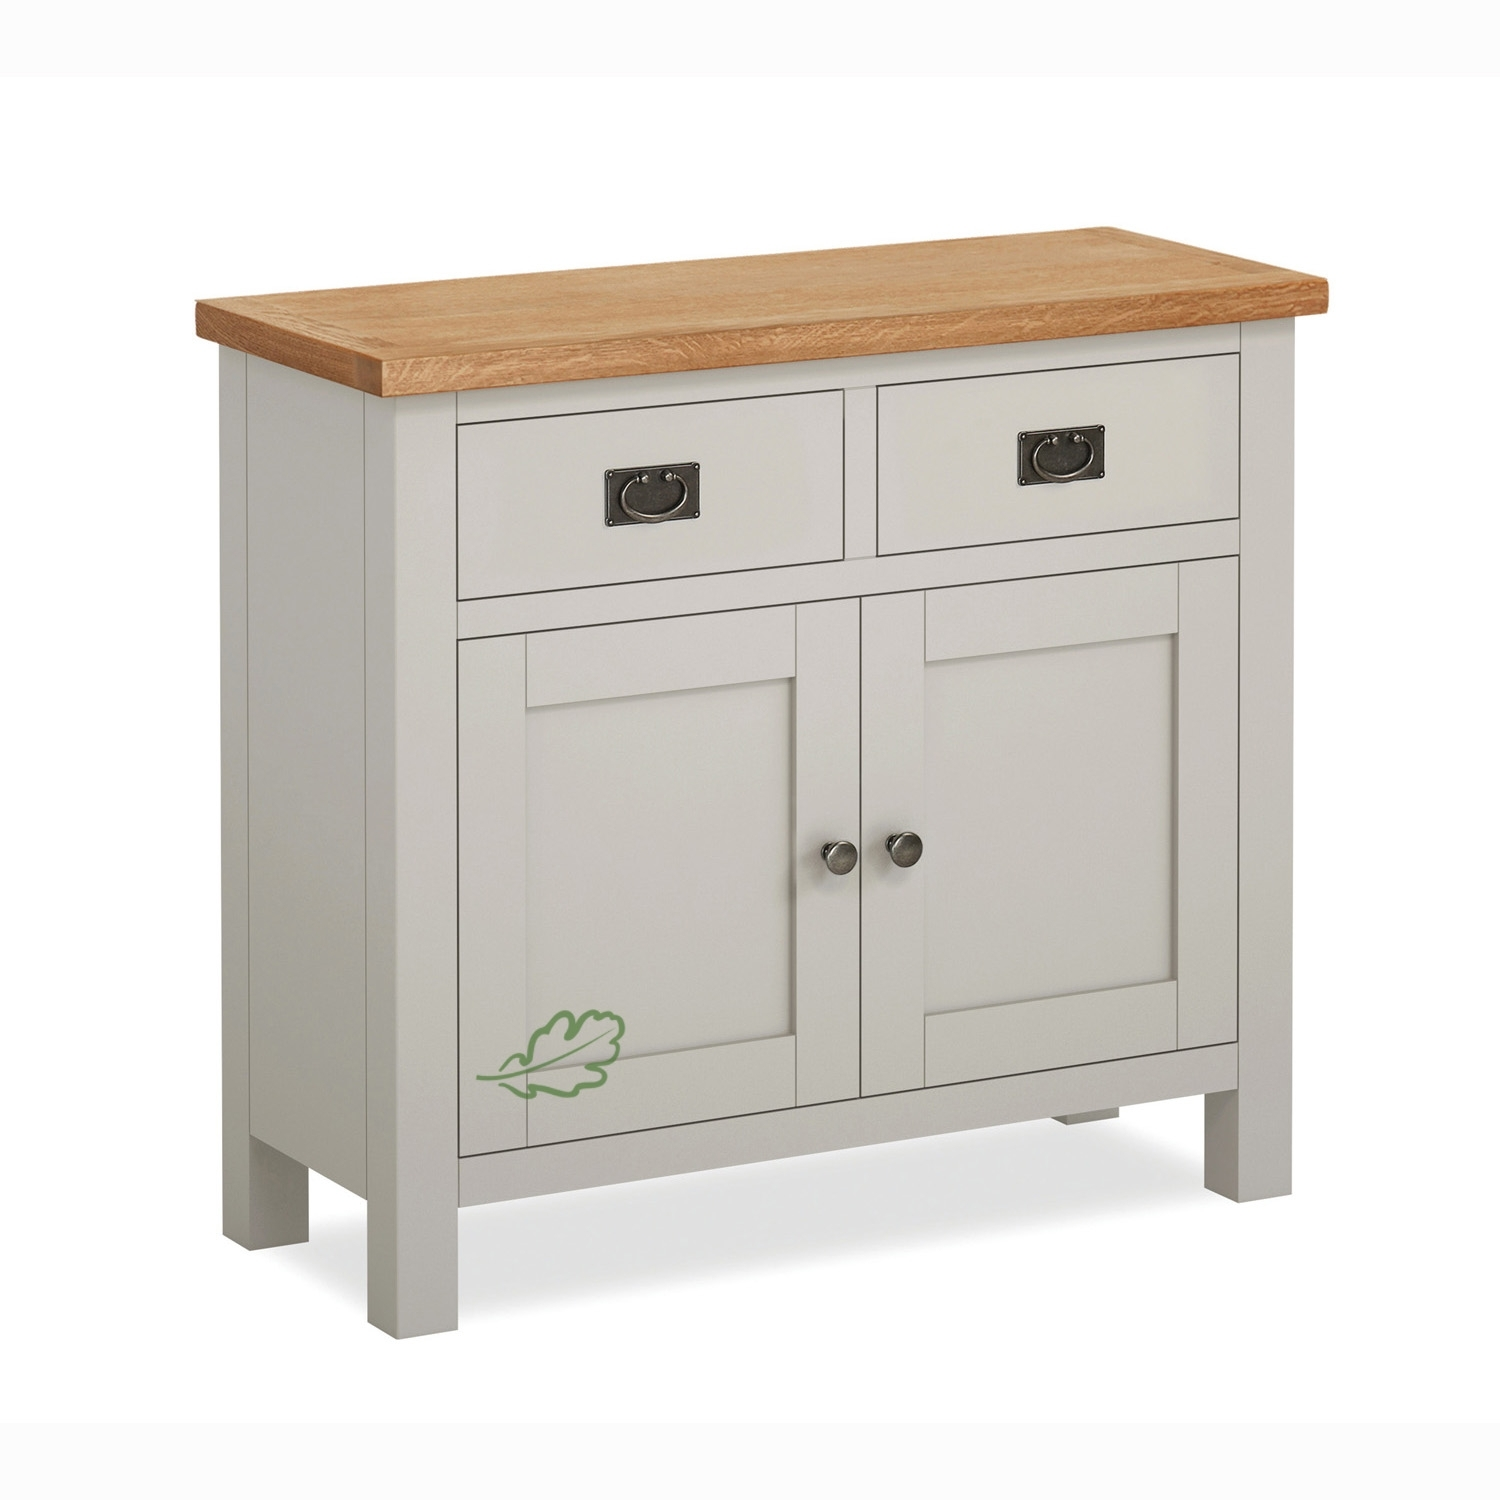 Sideboards Archives - Cumbria Oak with White Wash 2-Door Sideboards (Image 20 of 30)